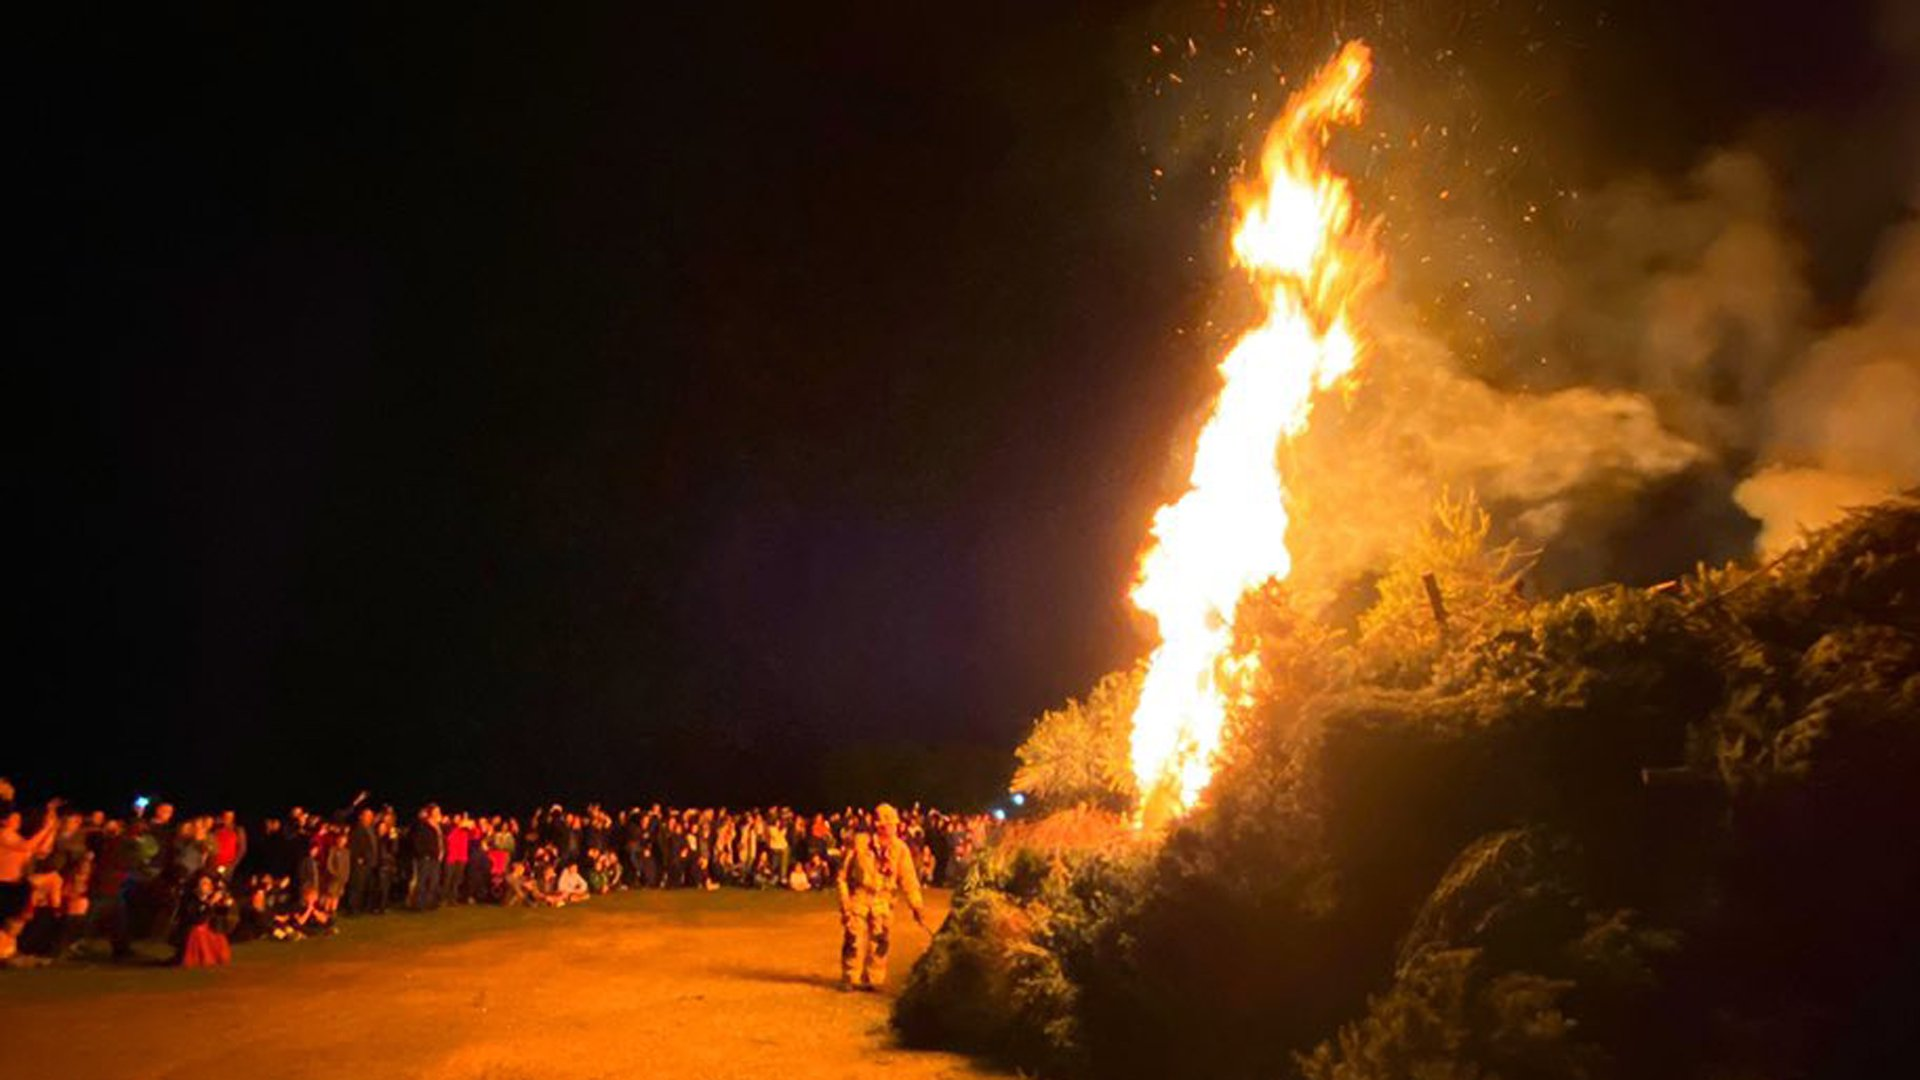 Firefighters set a pile of Christmas trees ablaze at the conclusion of the Julefest Celebration in Solvang on Jan. 3, 2019. (Credit: Santa Barbara County Fire Department)